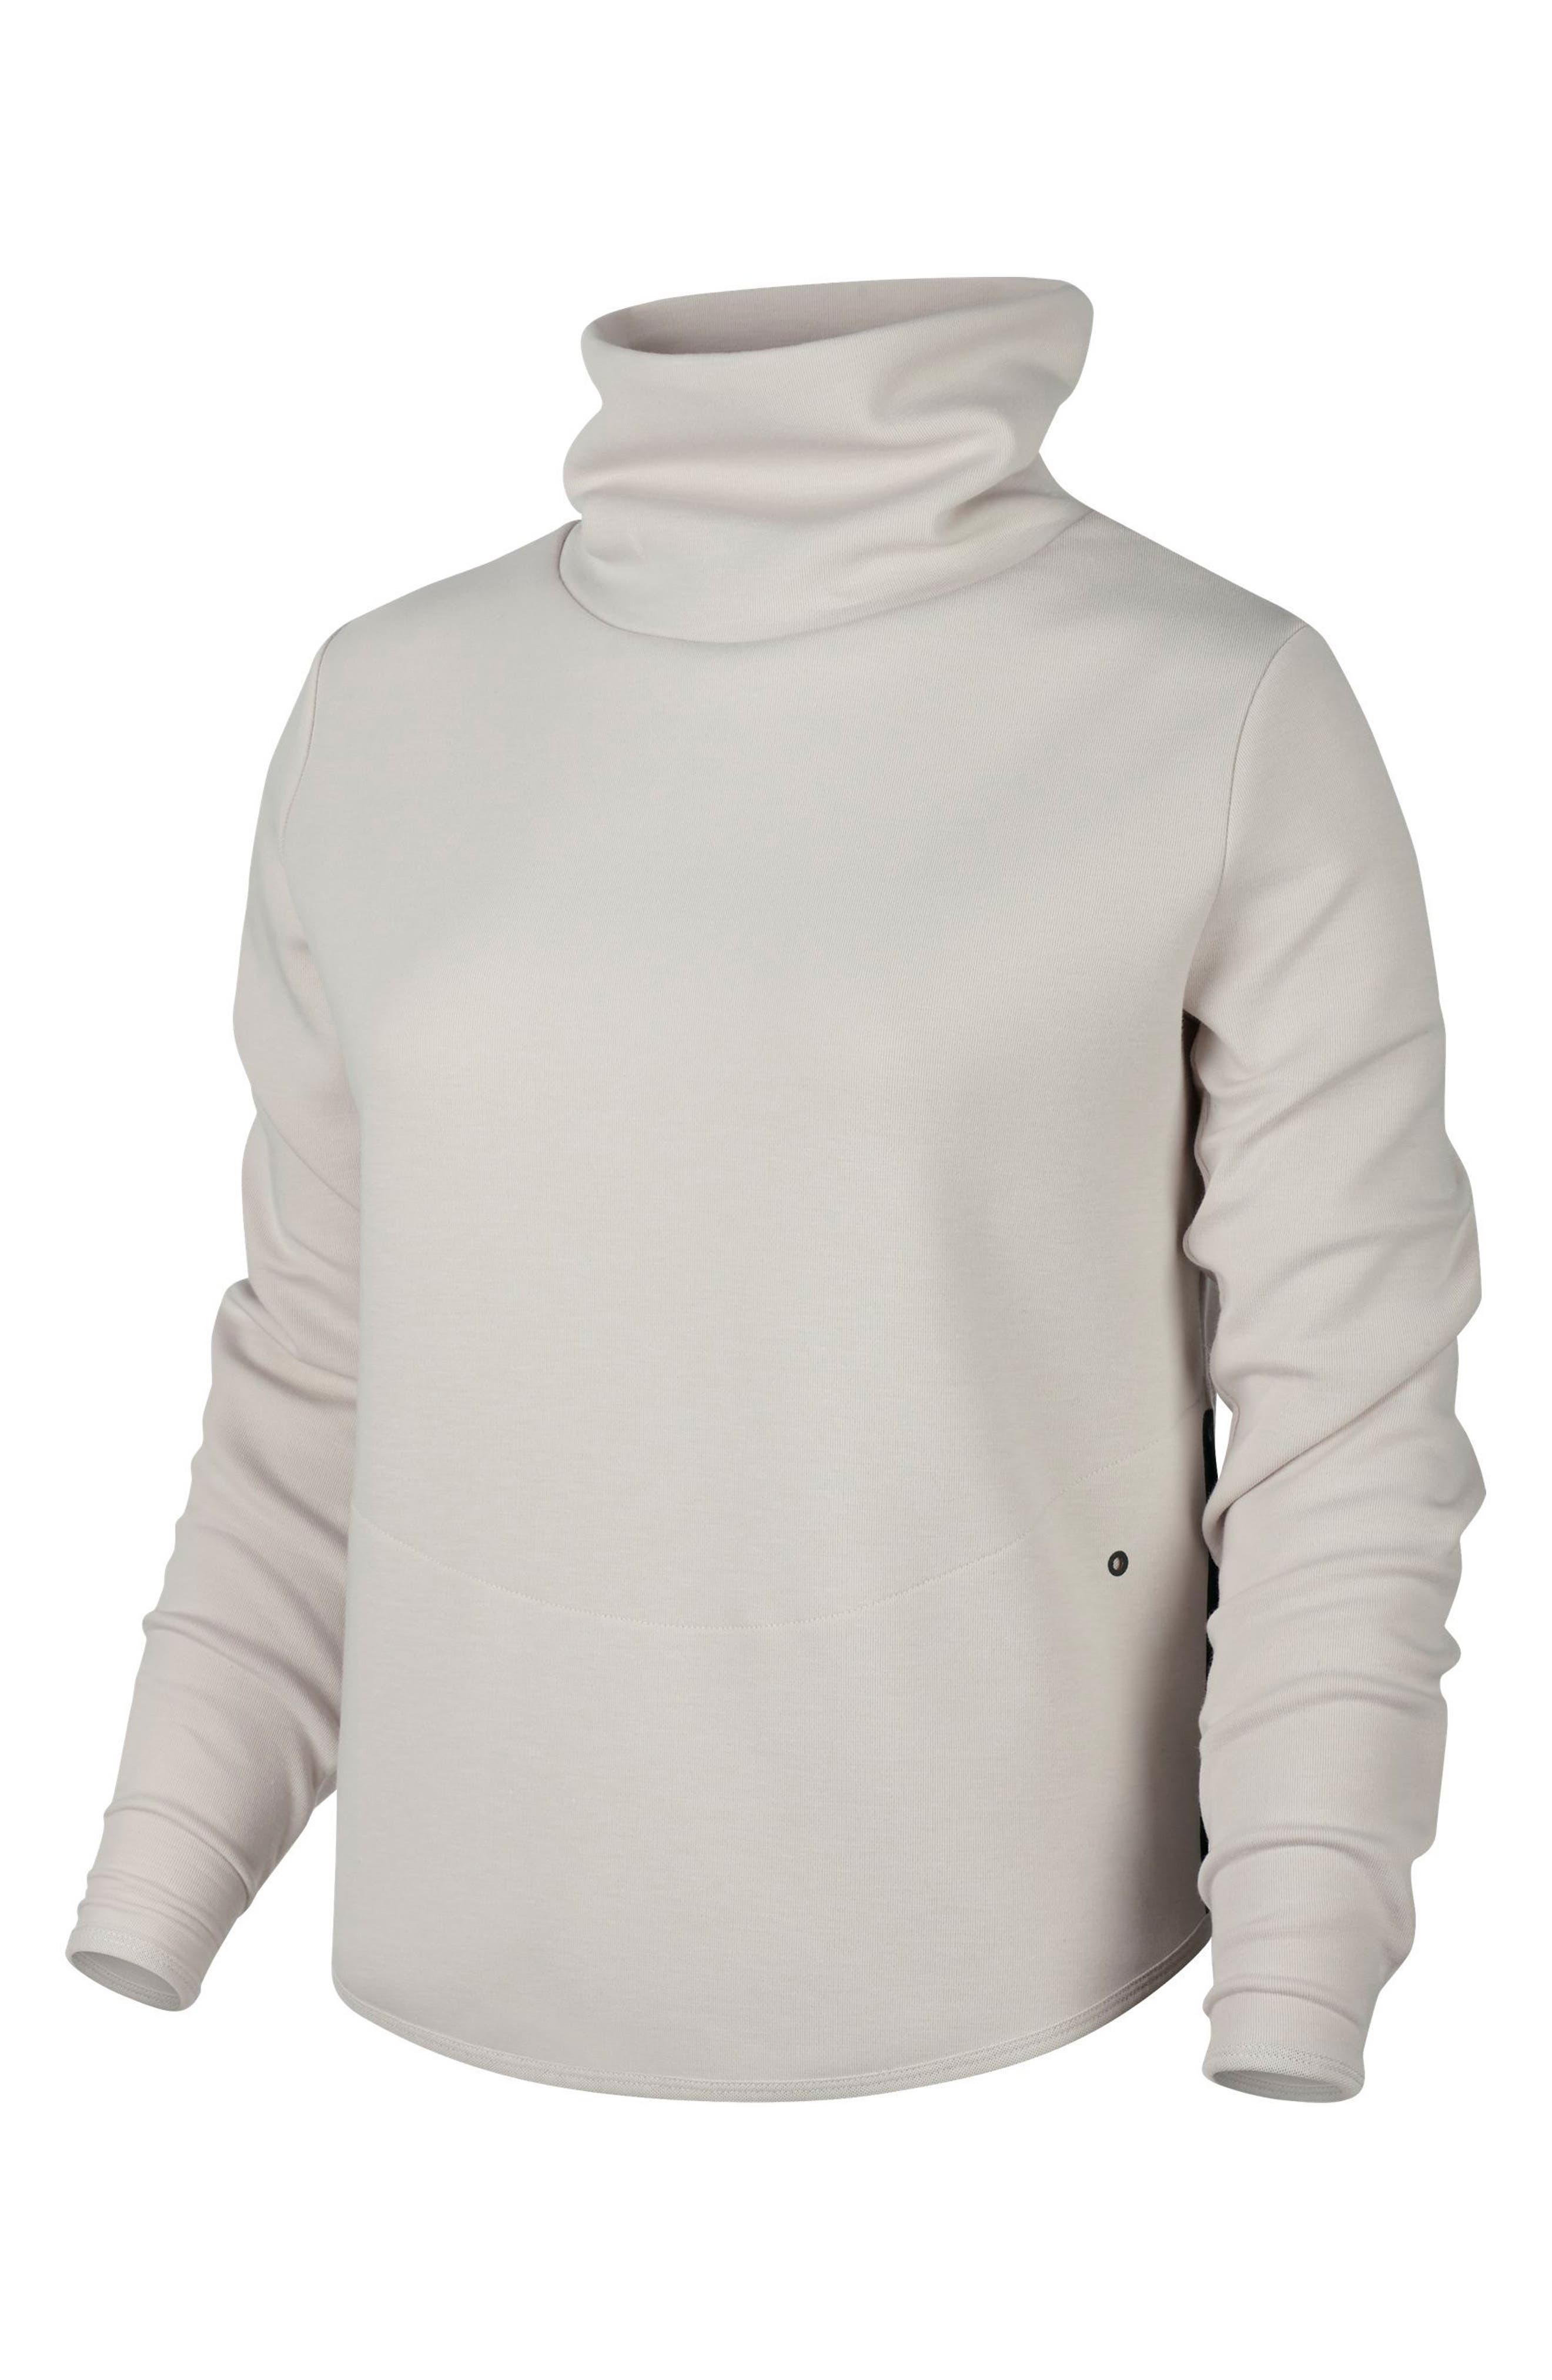 Women's Thermal Pullover Training Top,                         Main,                         color, Light Orewood Brown/ Black